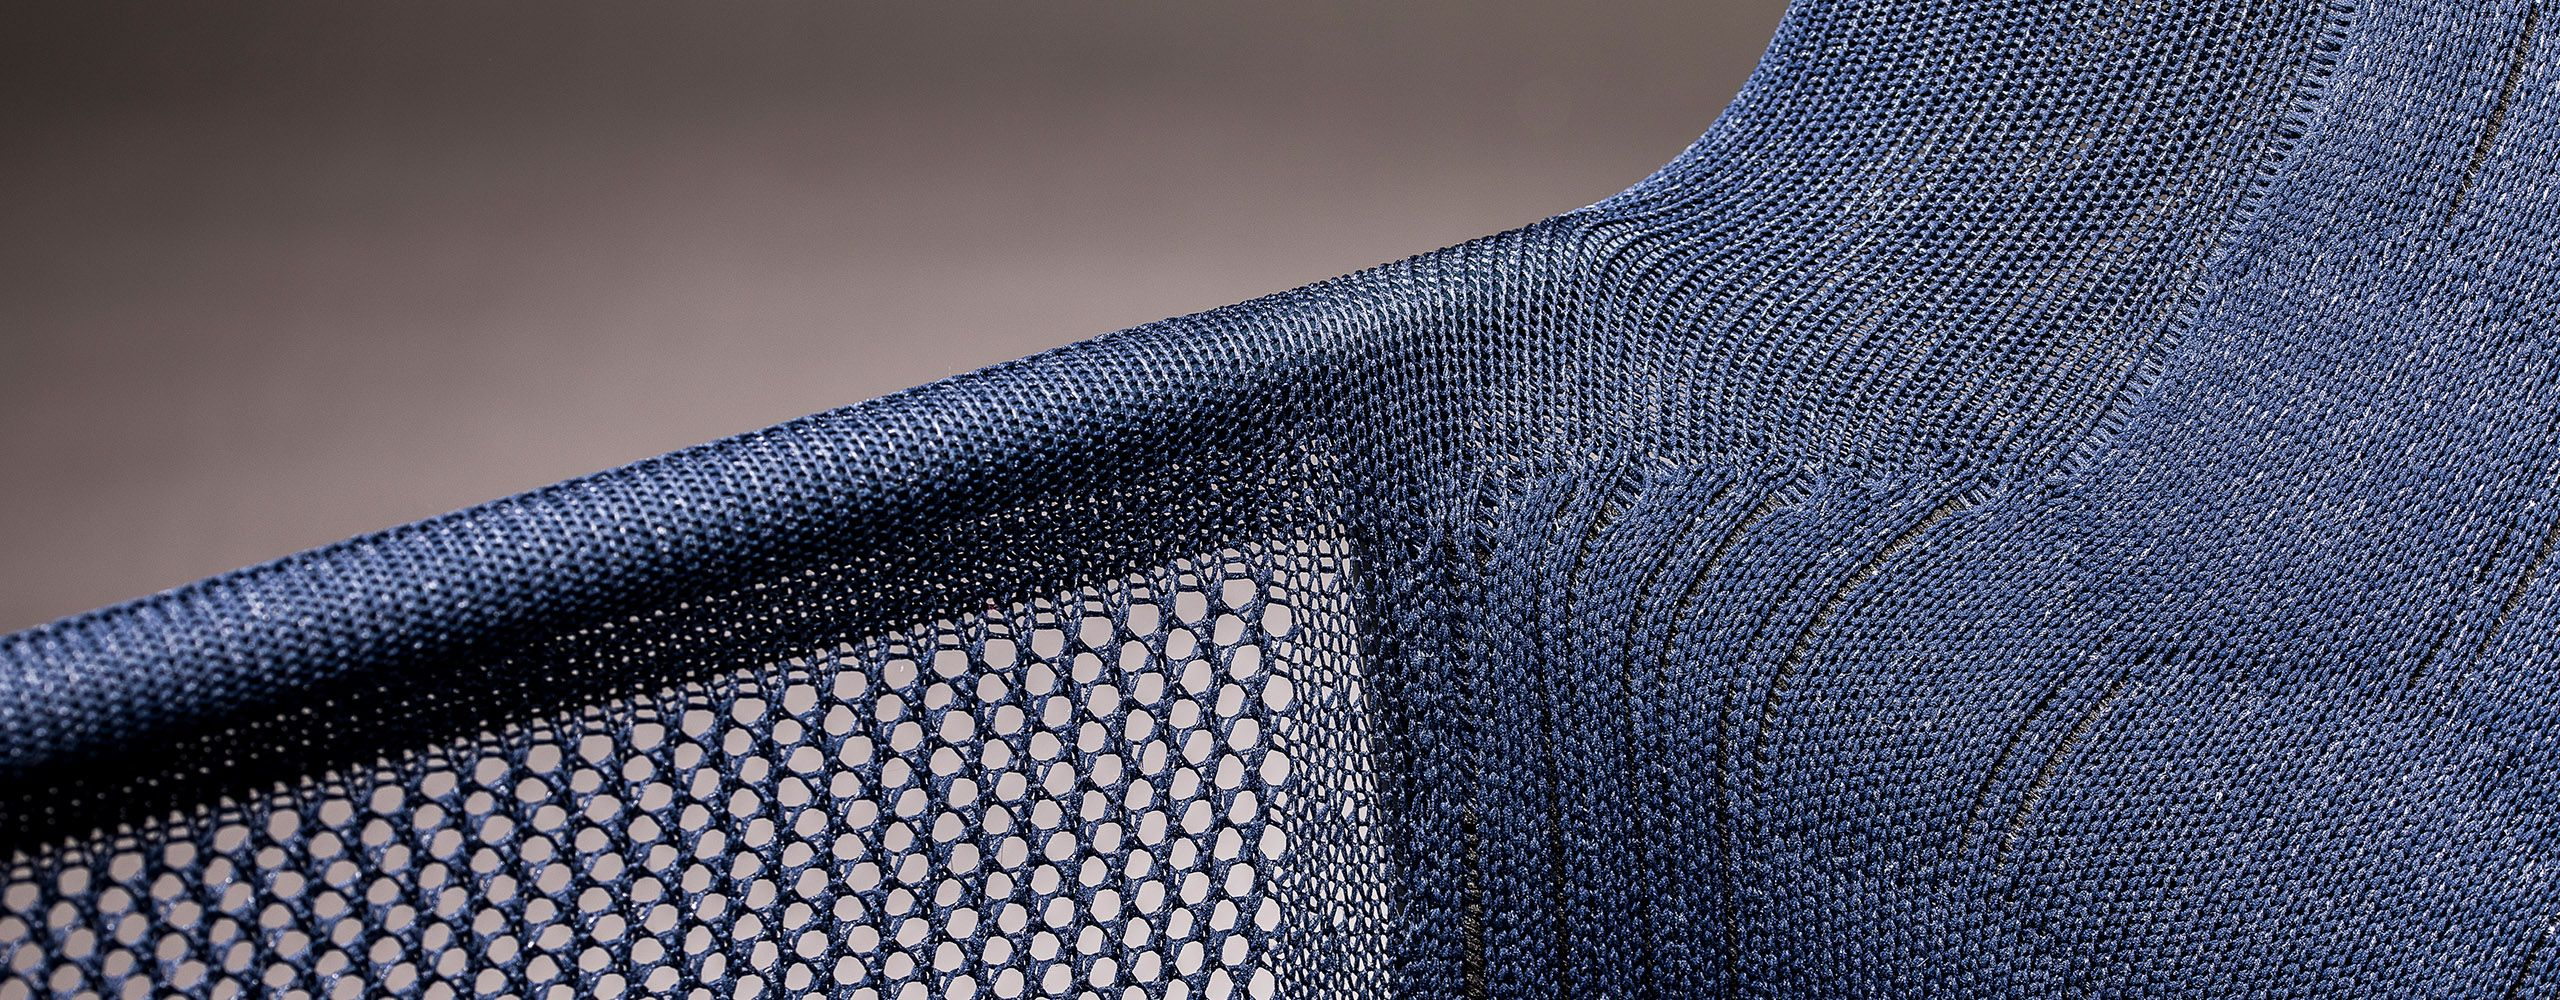 WHOLEGARMENT | SHIMA SEIKI | Computerized Flat Knitting